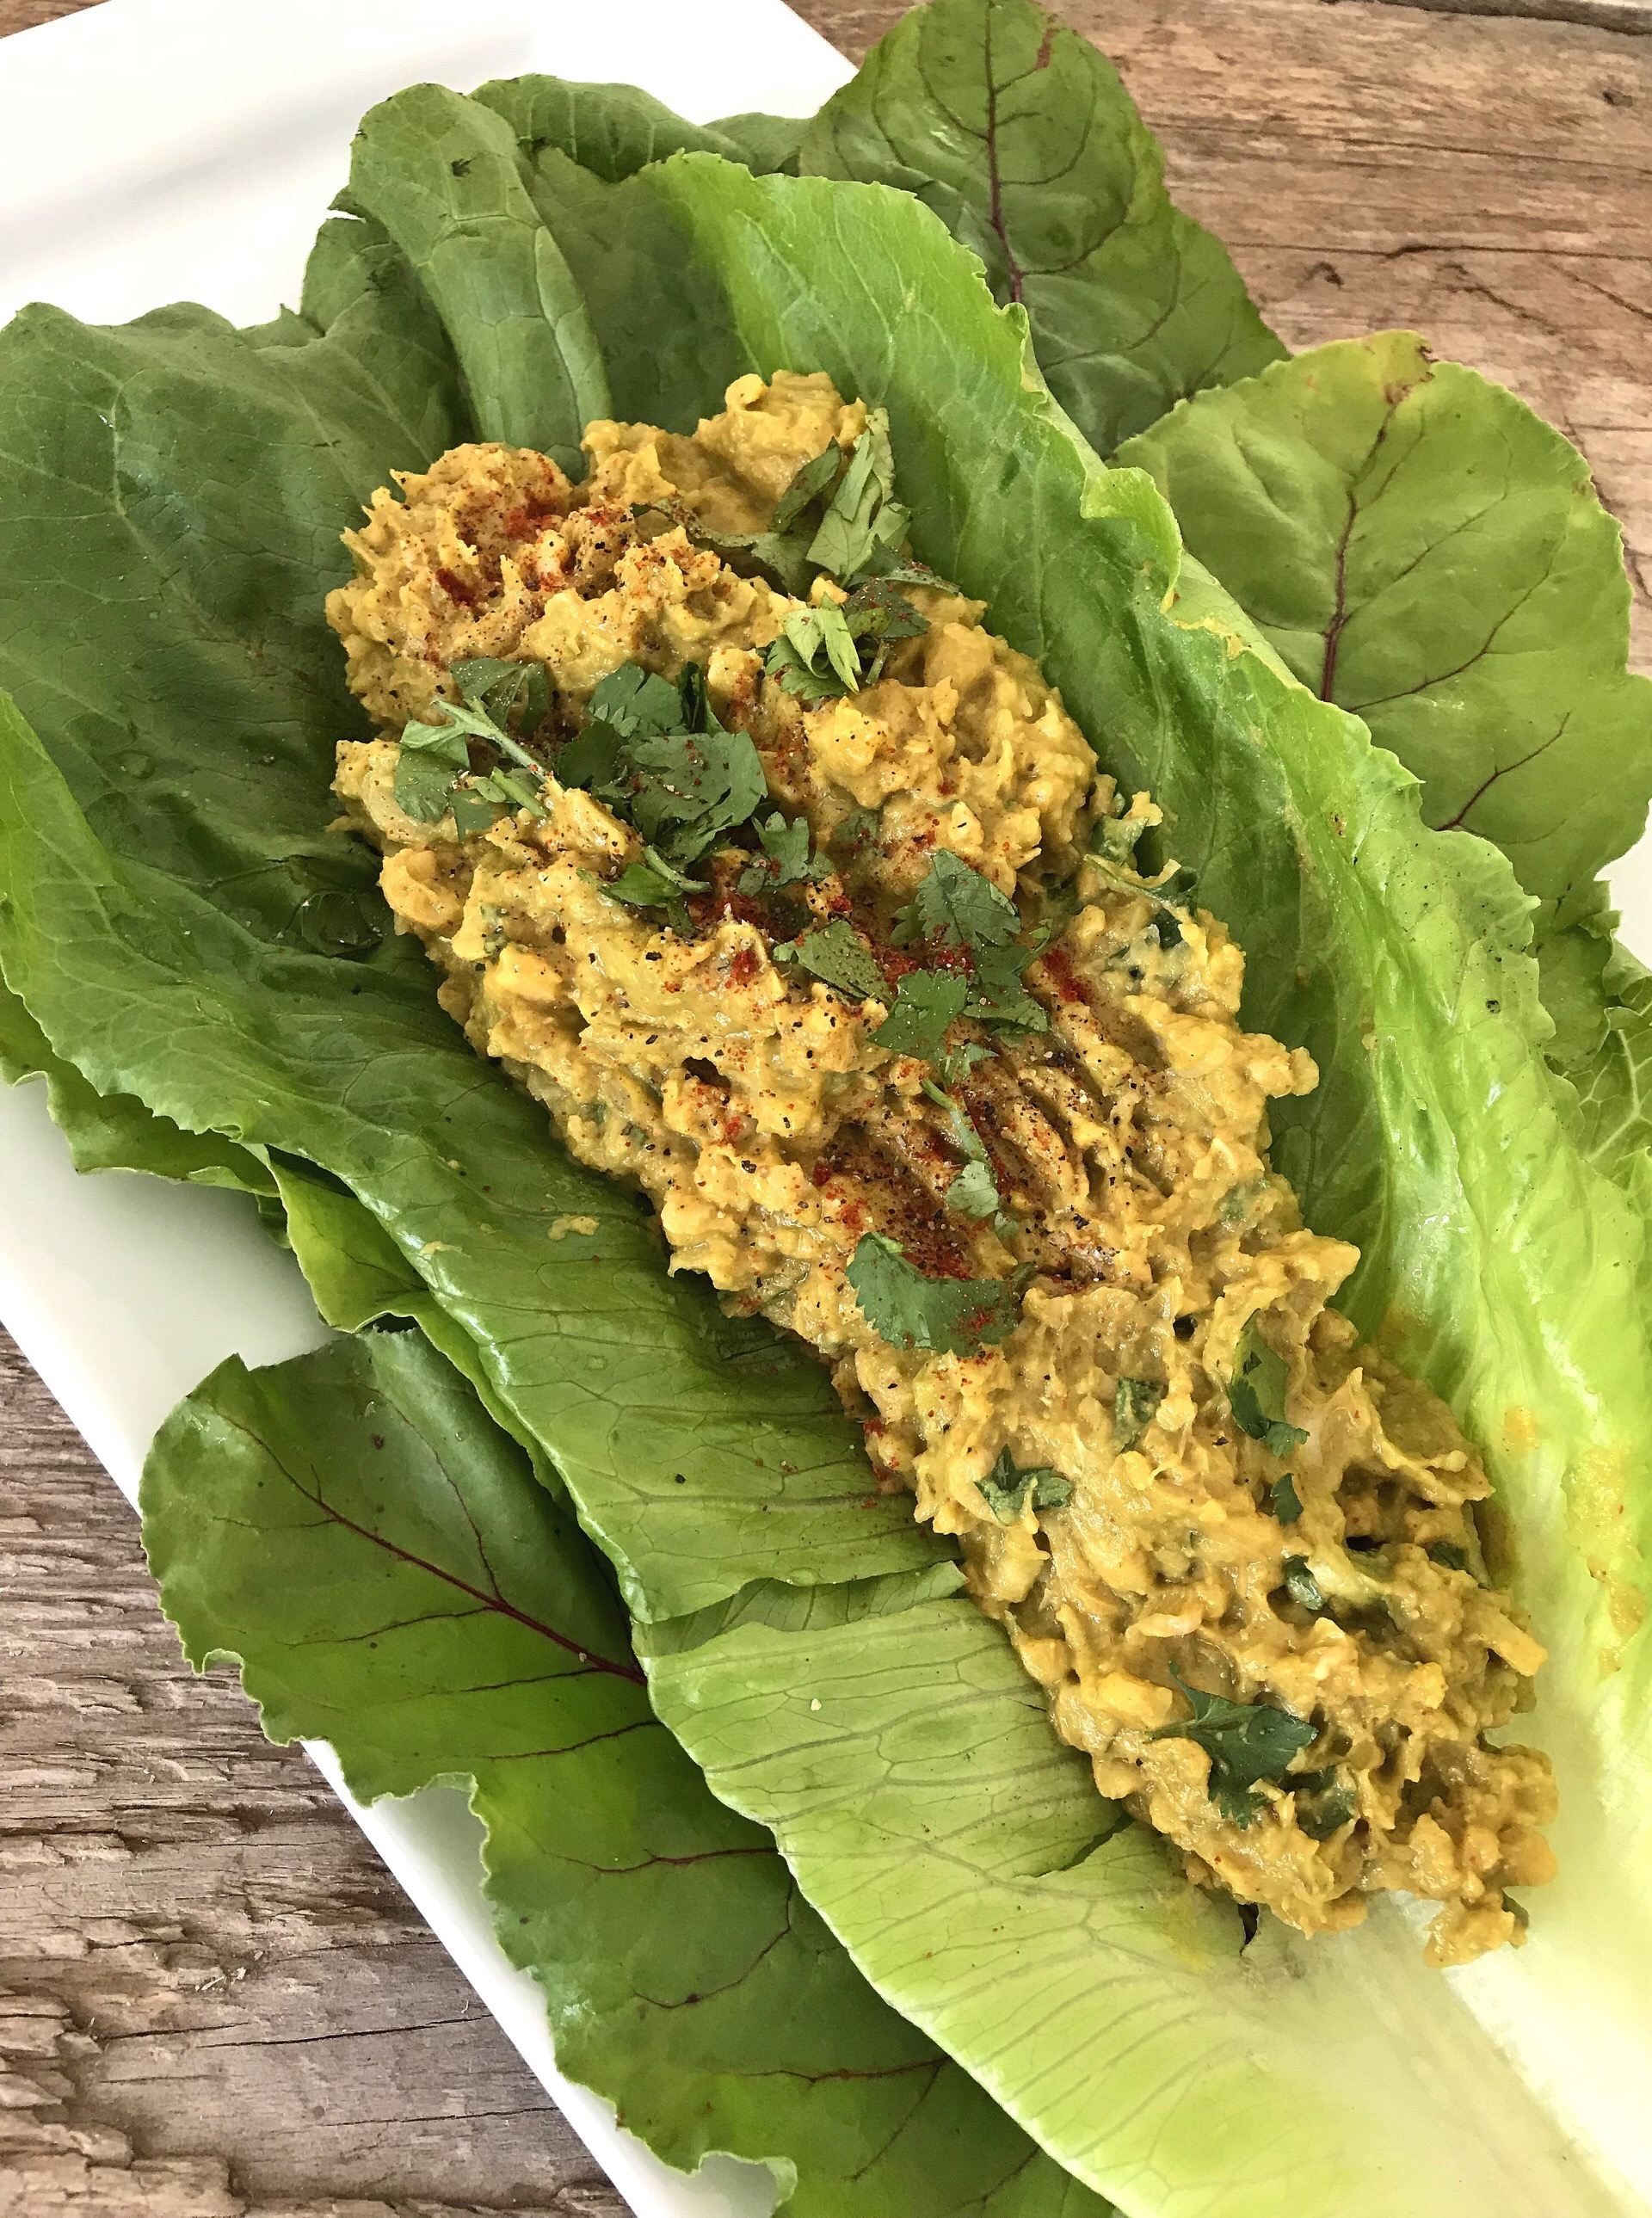 Smashed Chickpea & Avocado Salad with cilantro, served in a lettuce wrap.